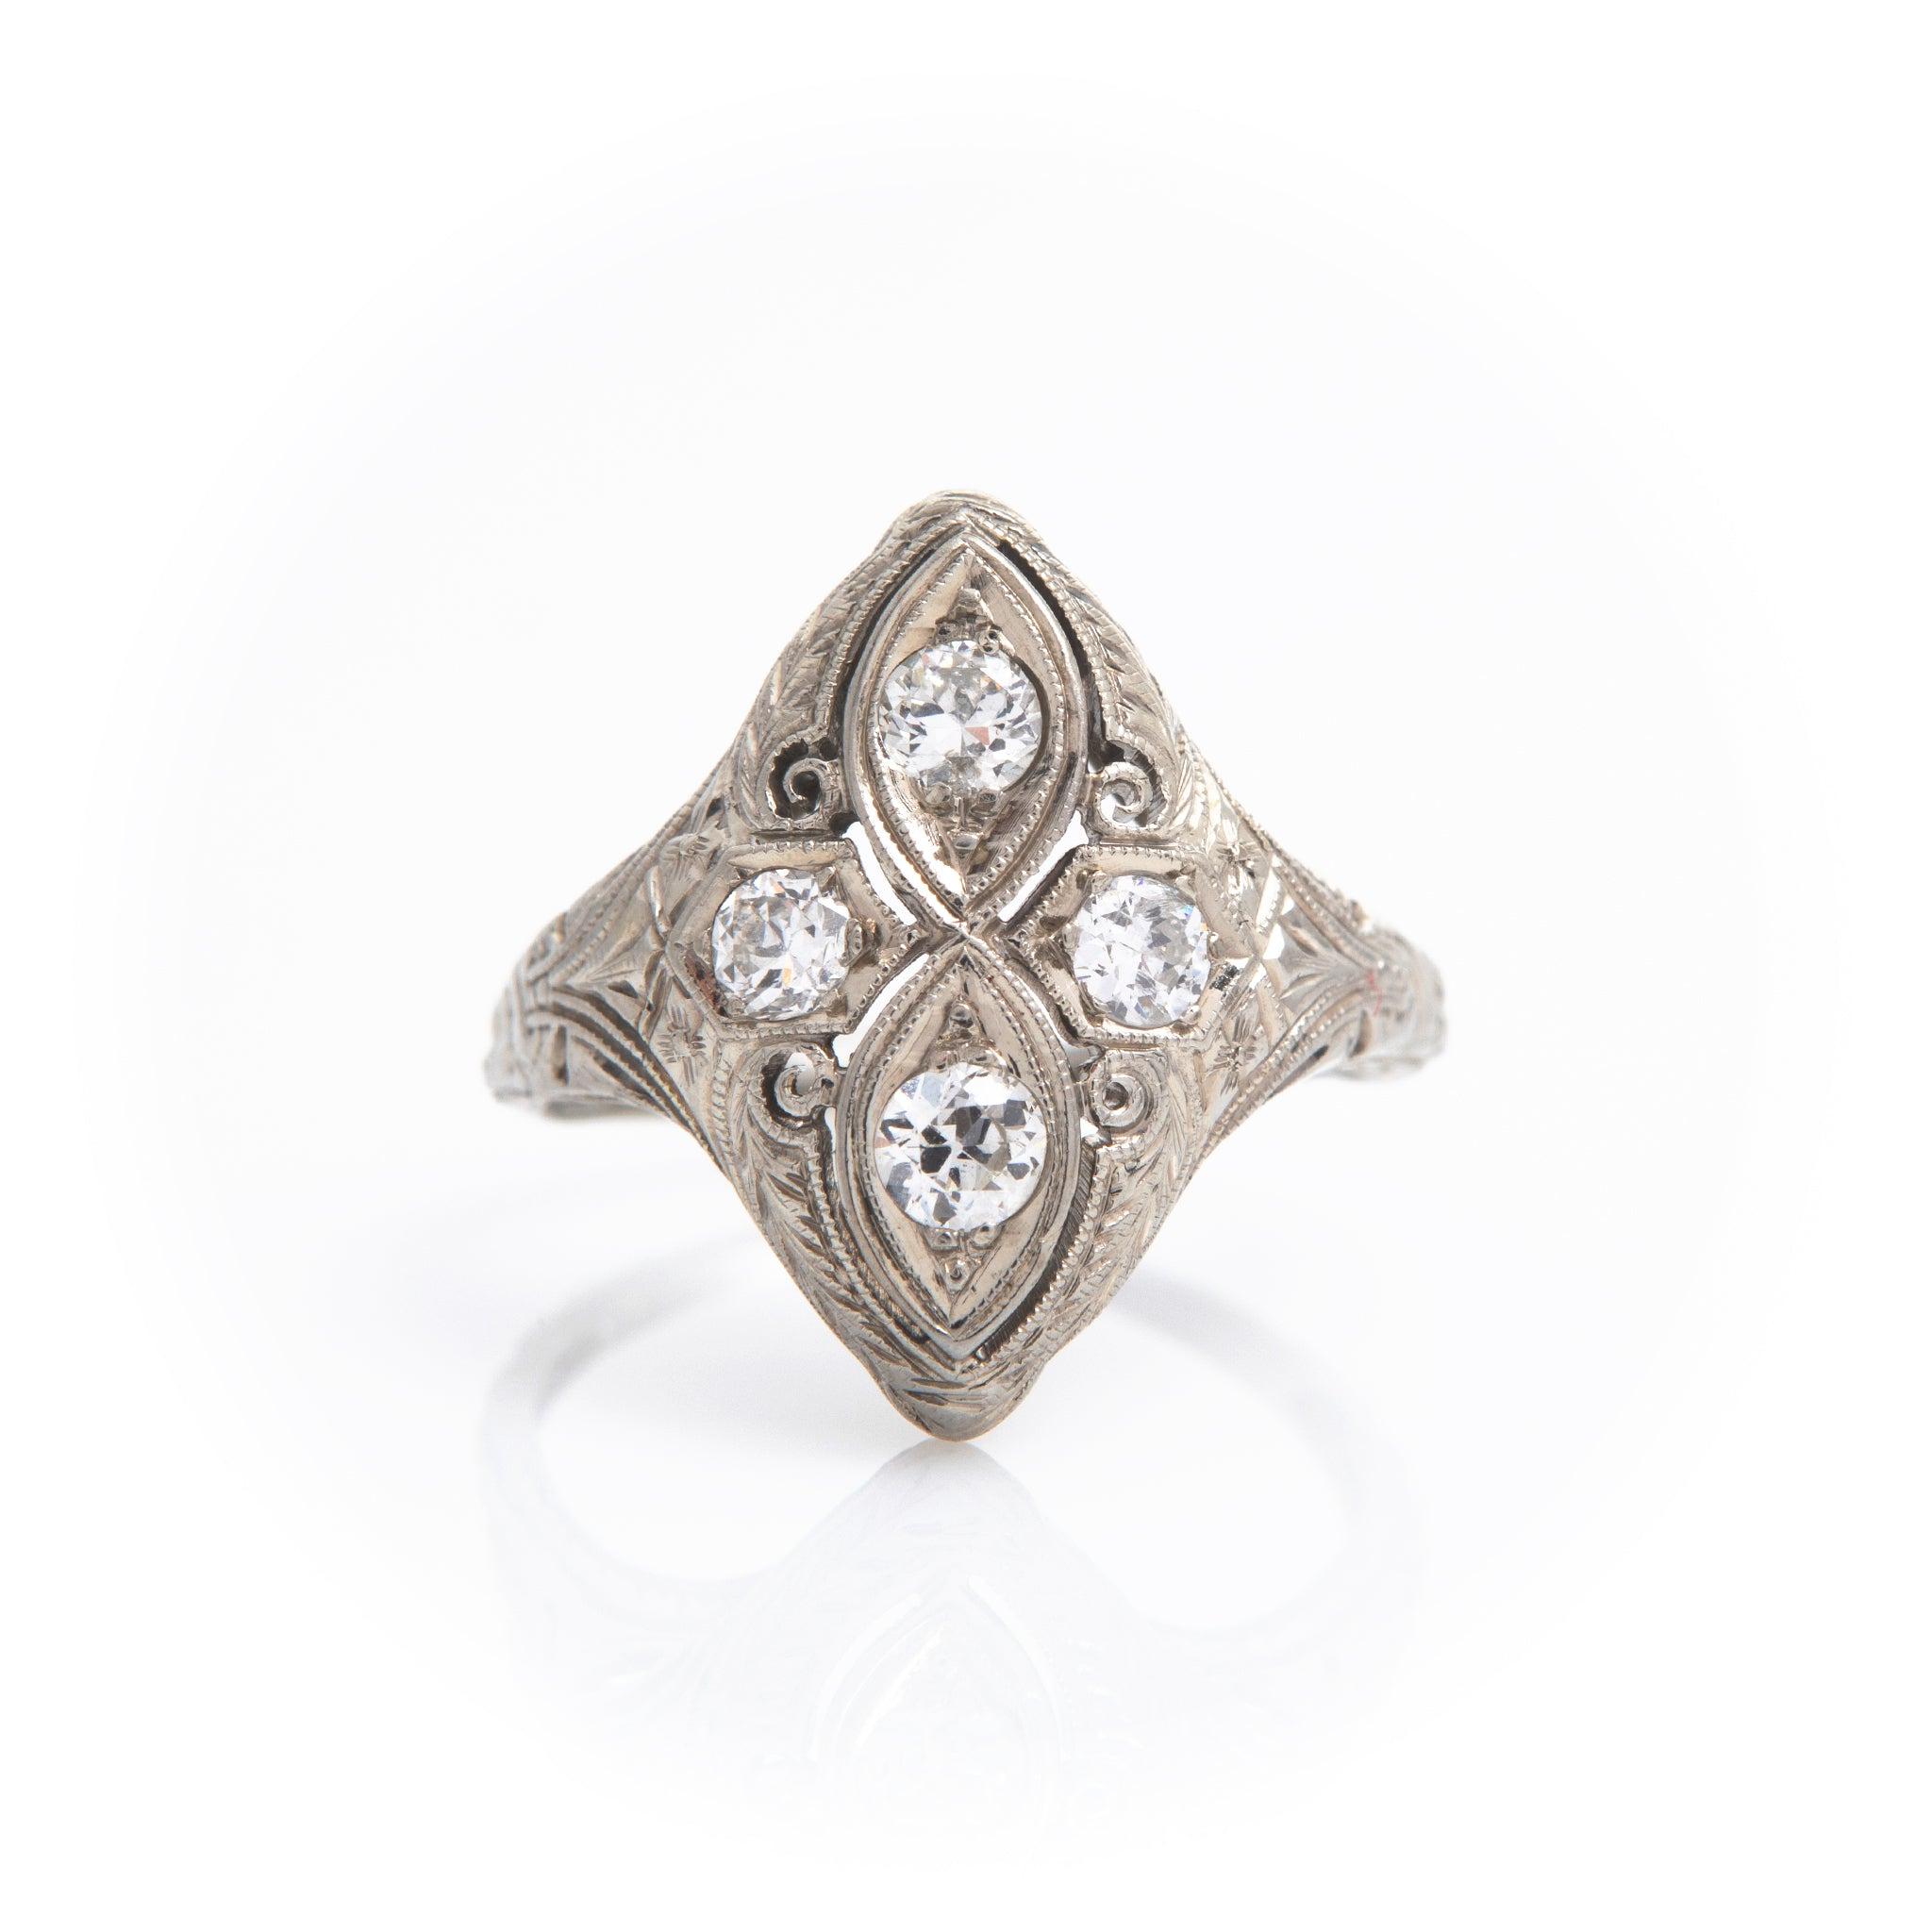 *SOLD* Diamonds in Vintage White Gold Ring - Sindur Style